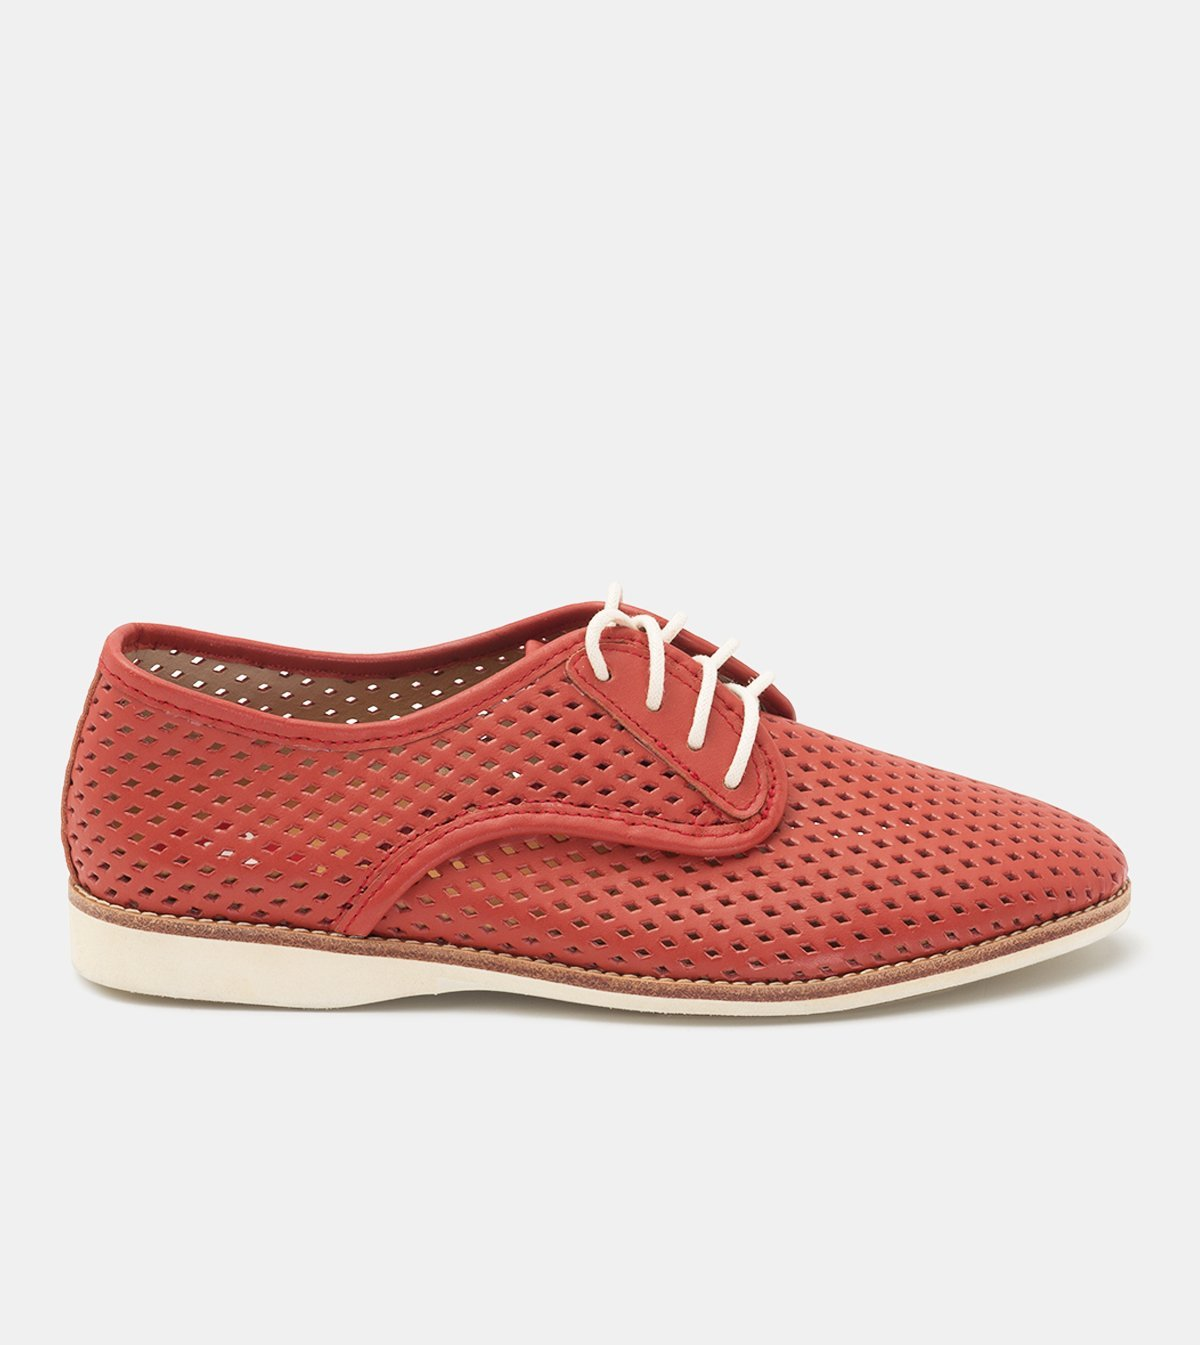 Rollie Derby Punch Red Flat Leather Comfortable Walking